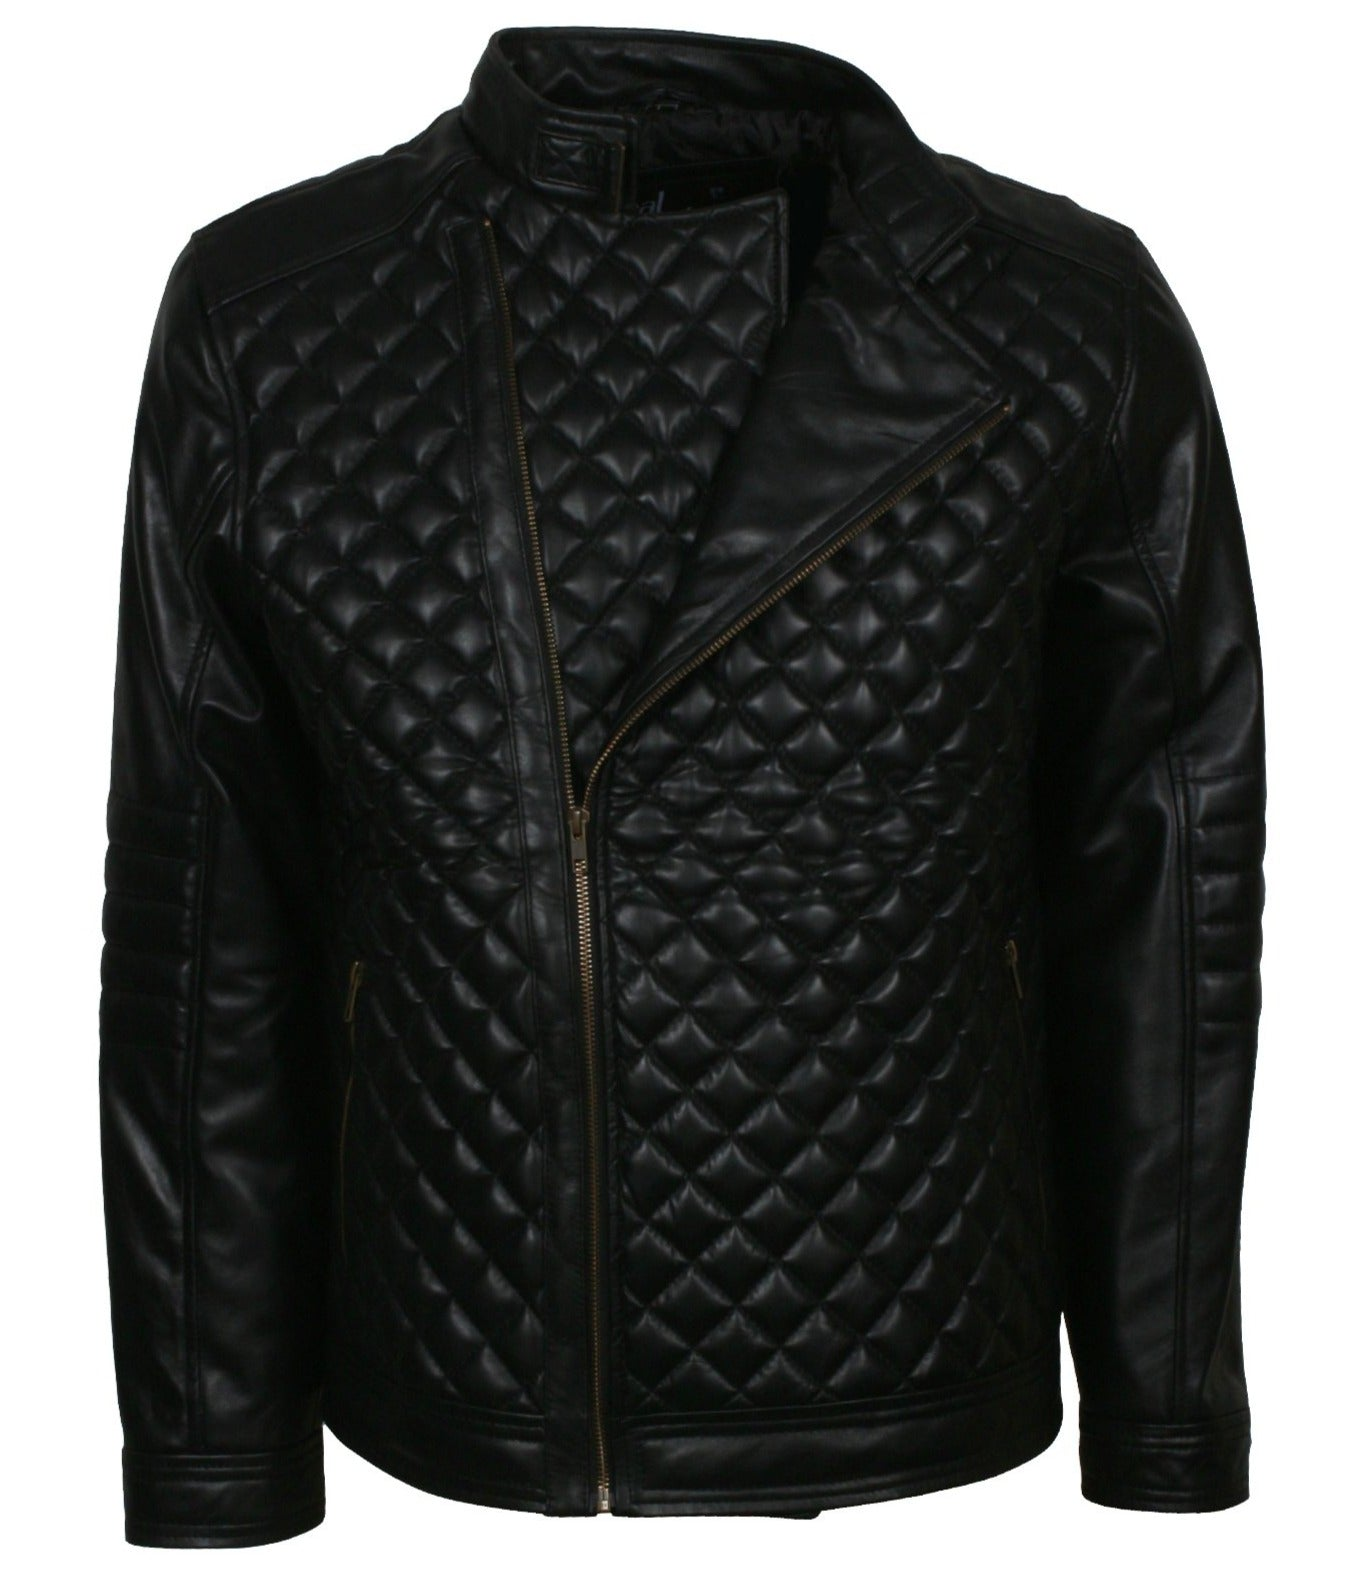 Diamond Quilted Full Zip Jacket